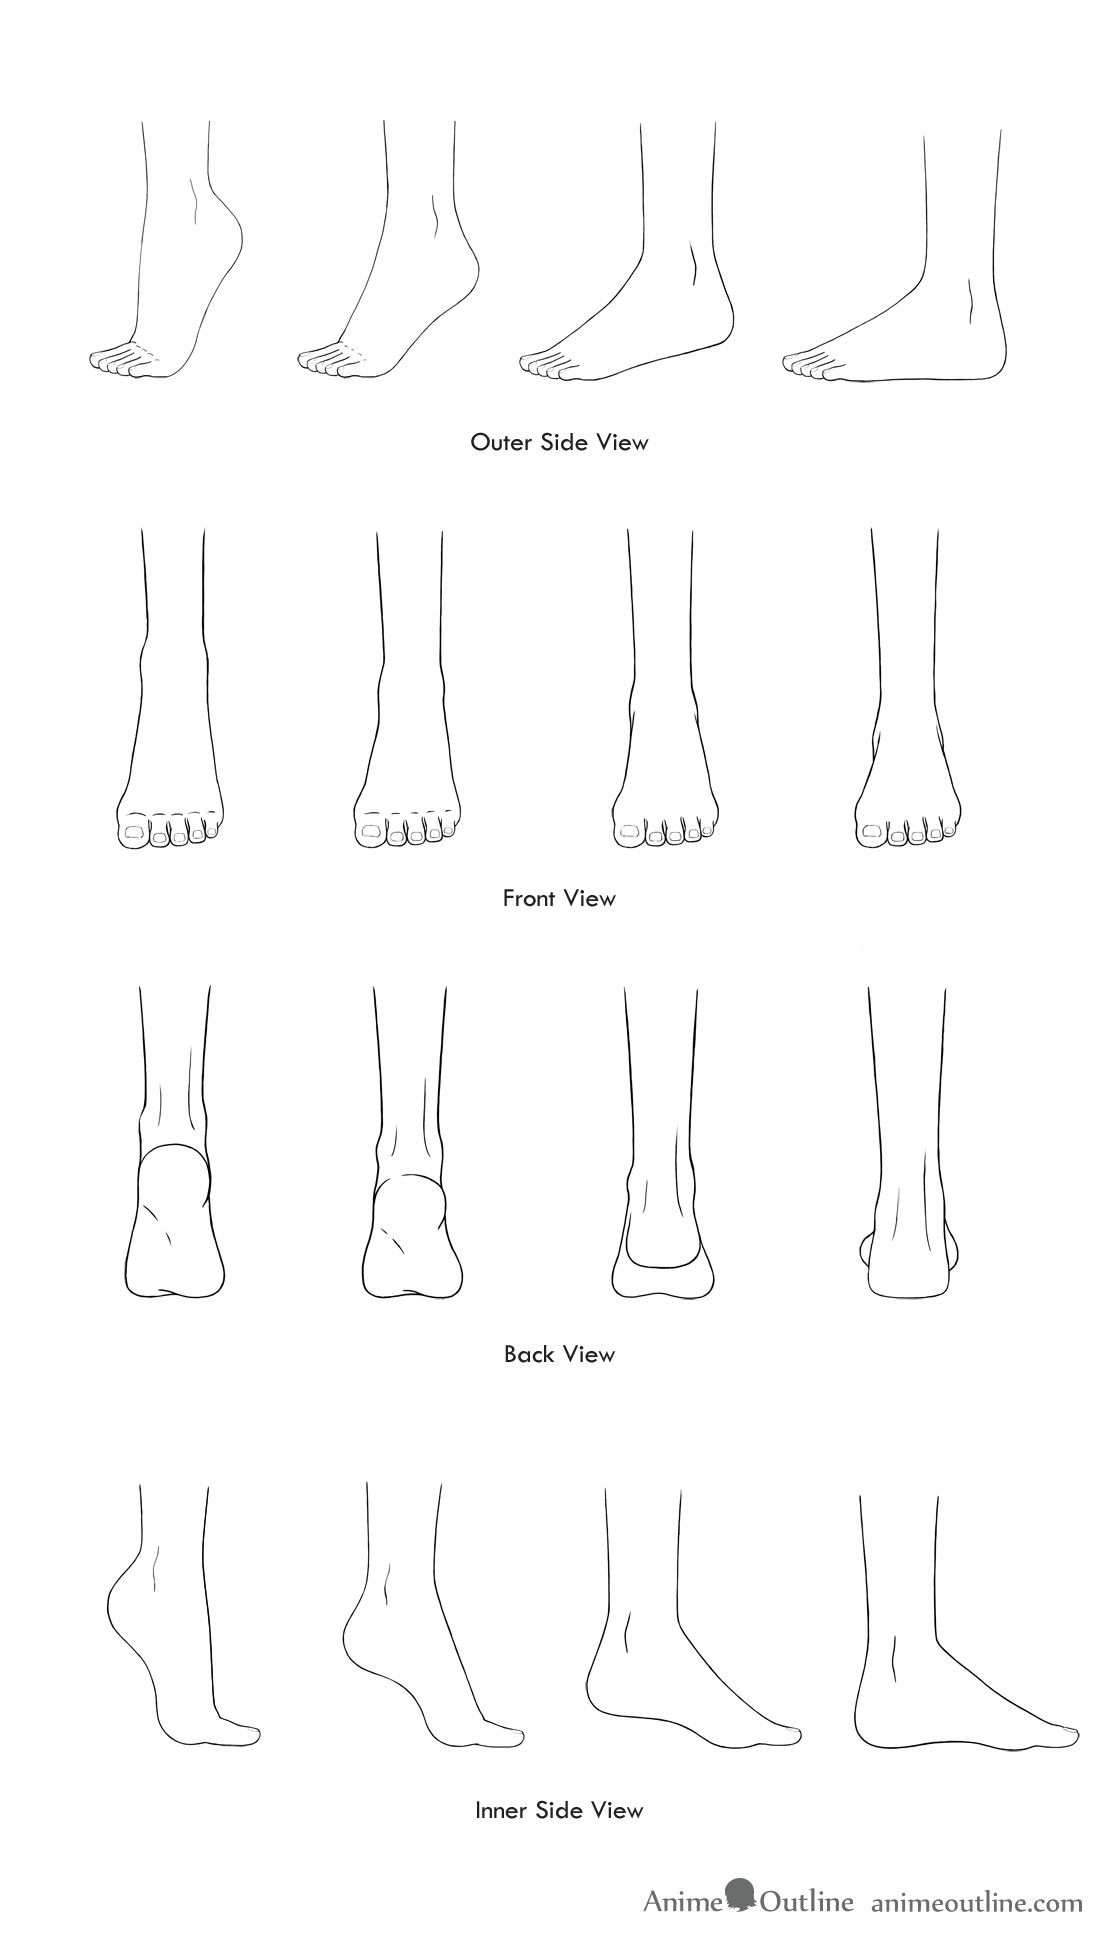 Drawings Of Anime Feet In Different Positions In